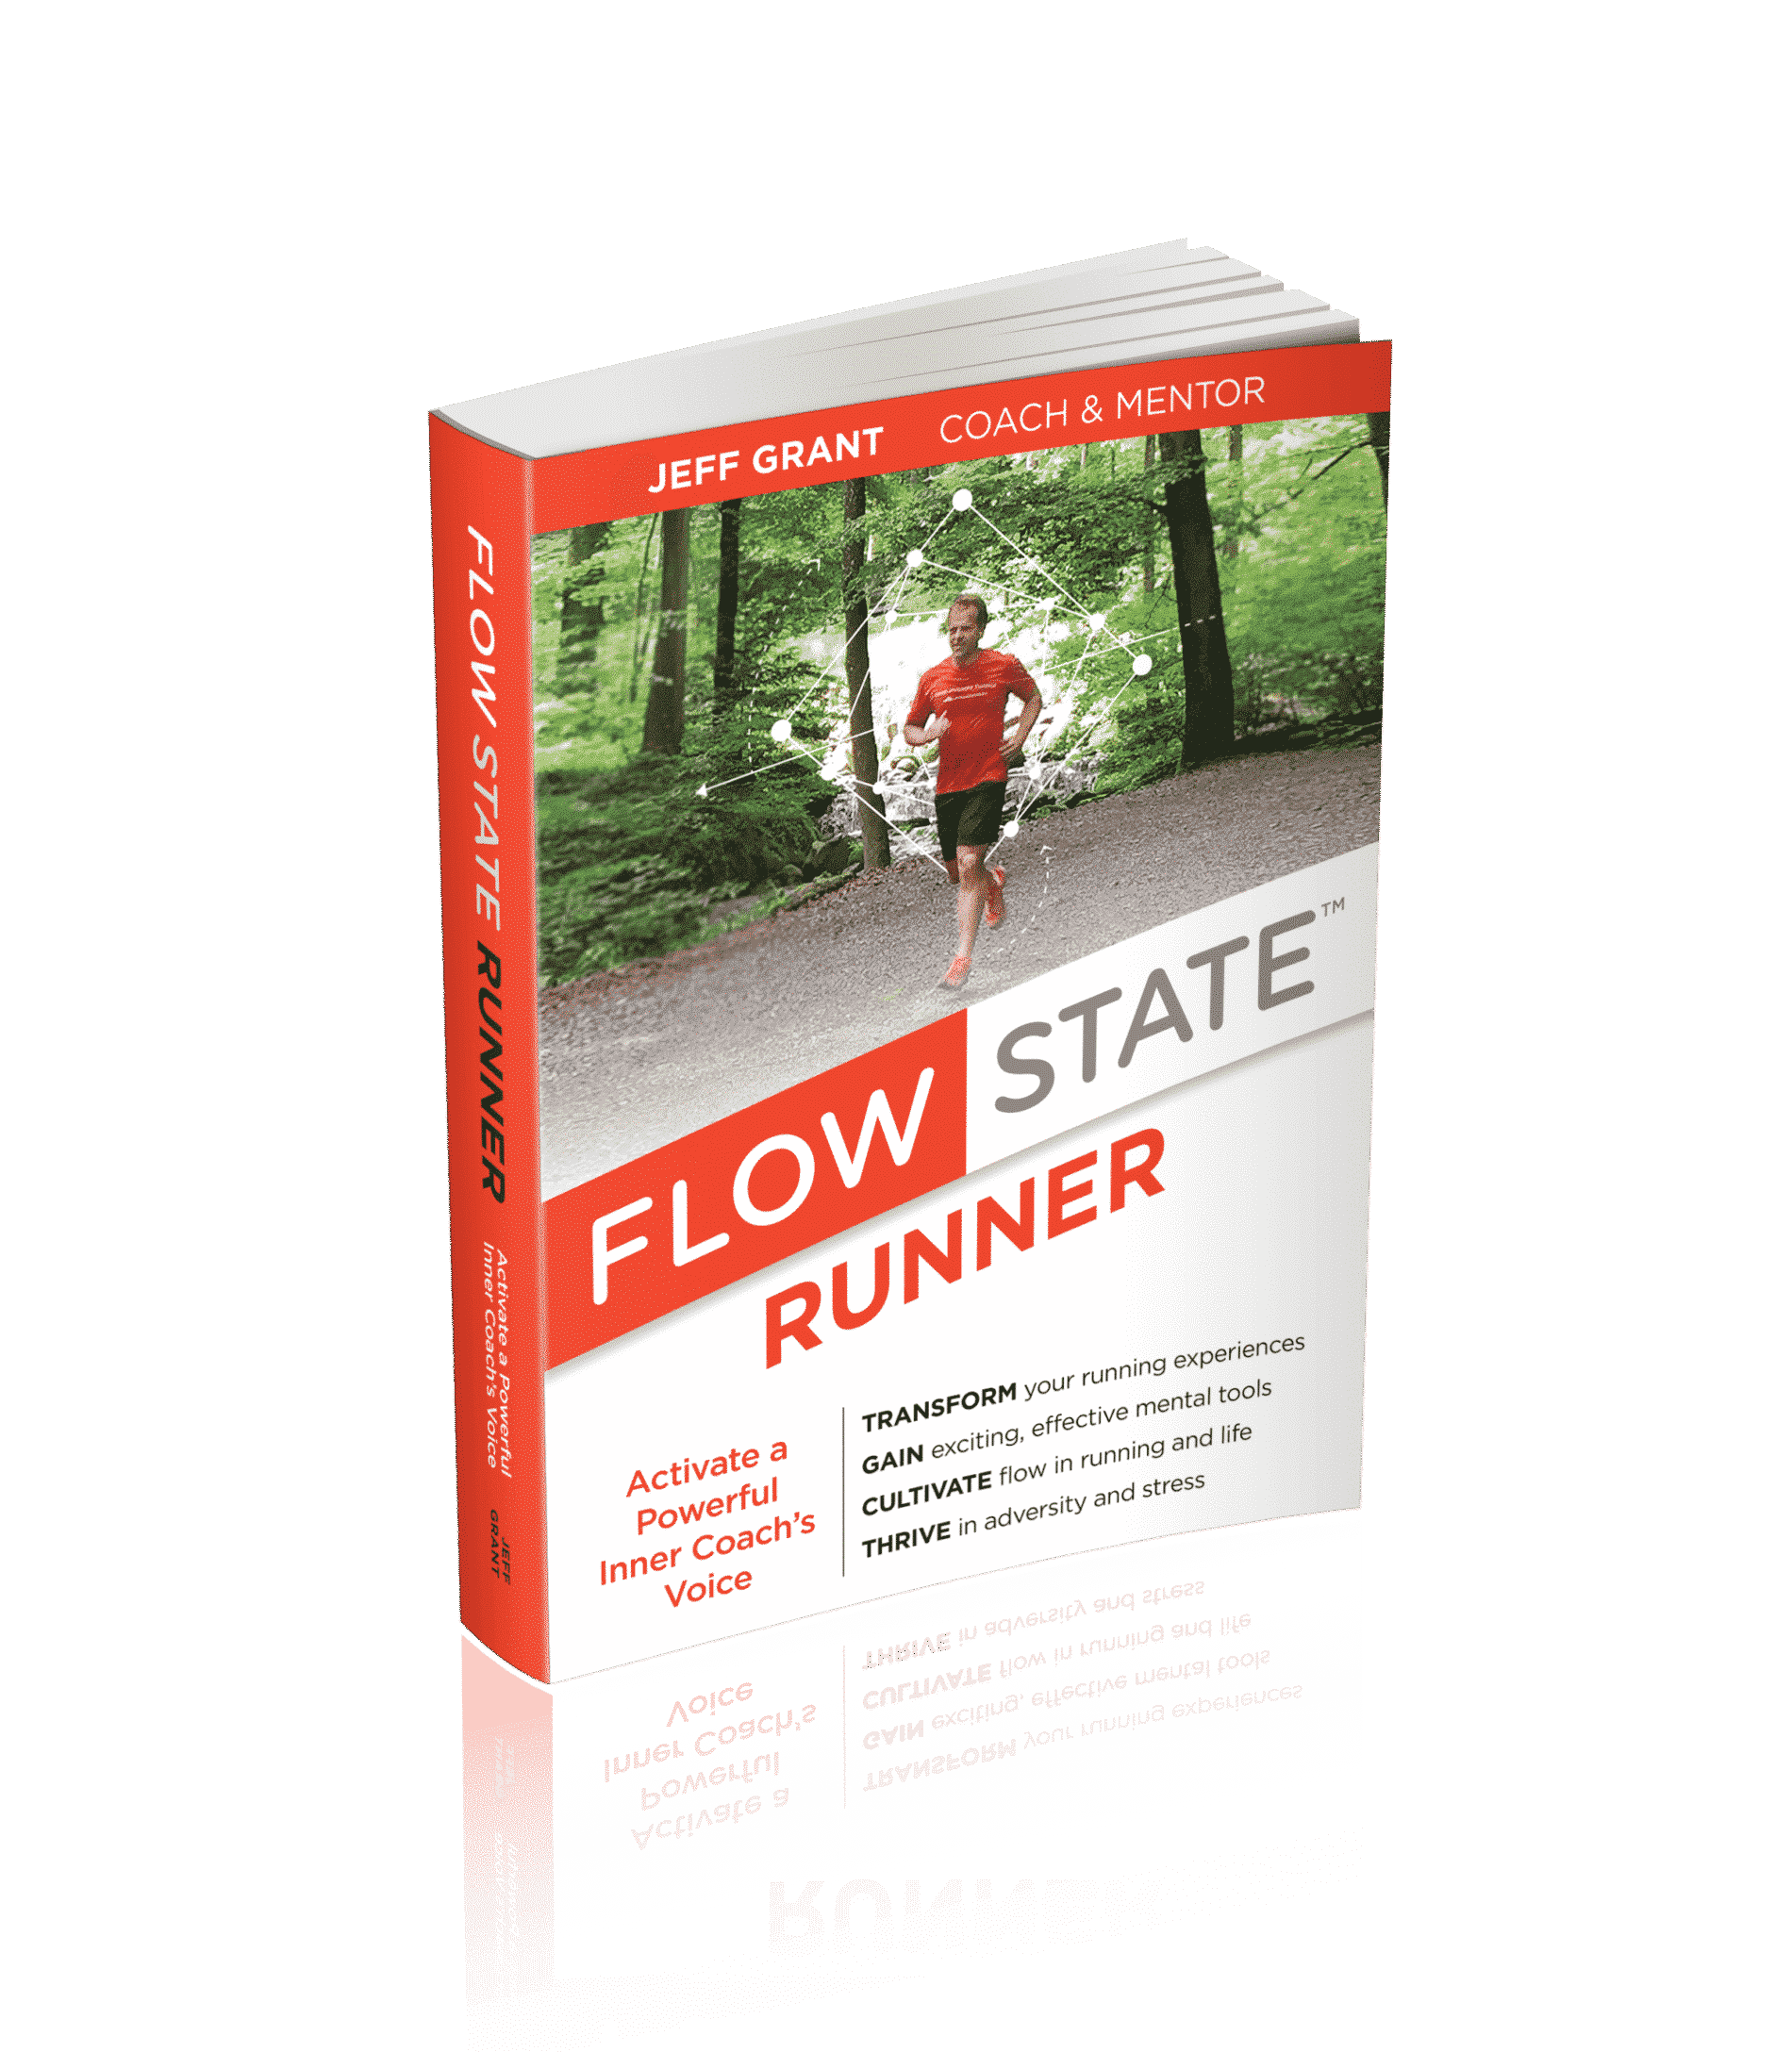 Flow State Runner by Jeff Grant